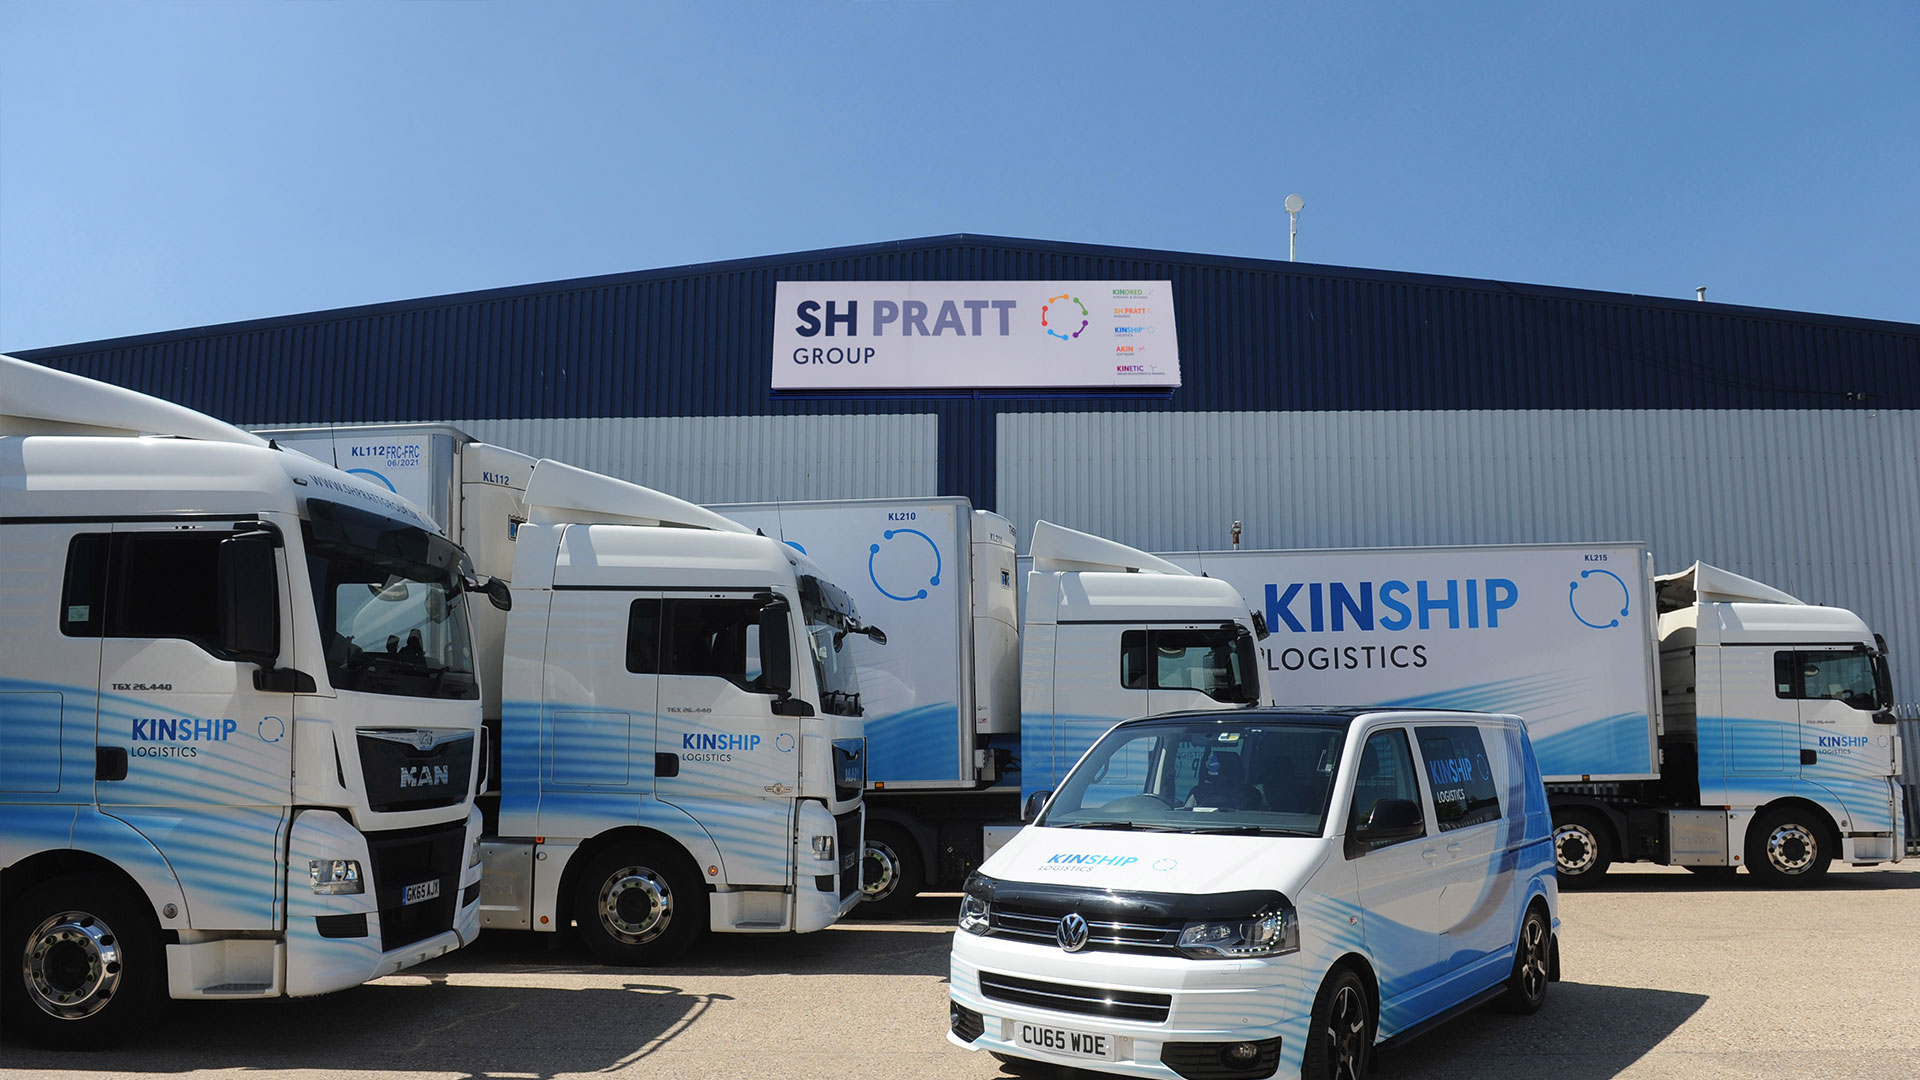 Image of Kinship Logistics lorries